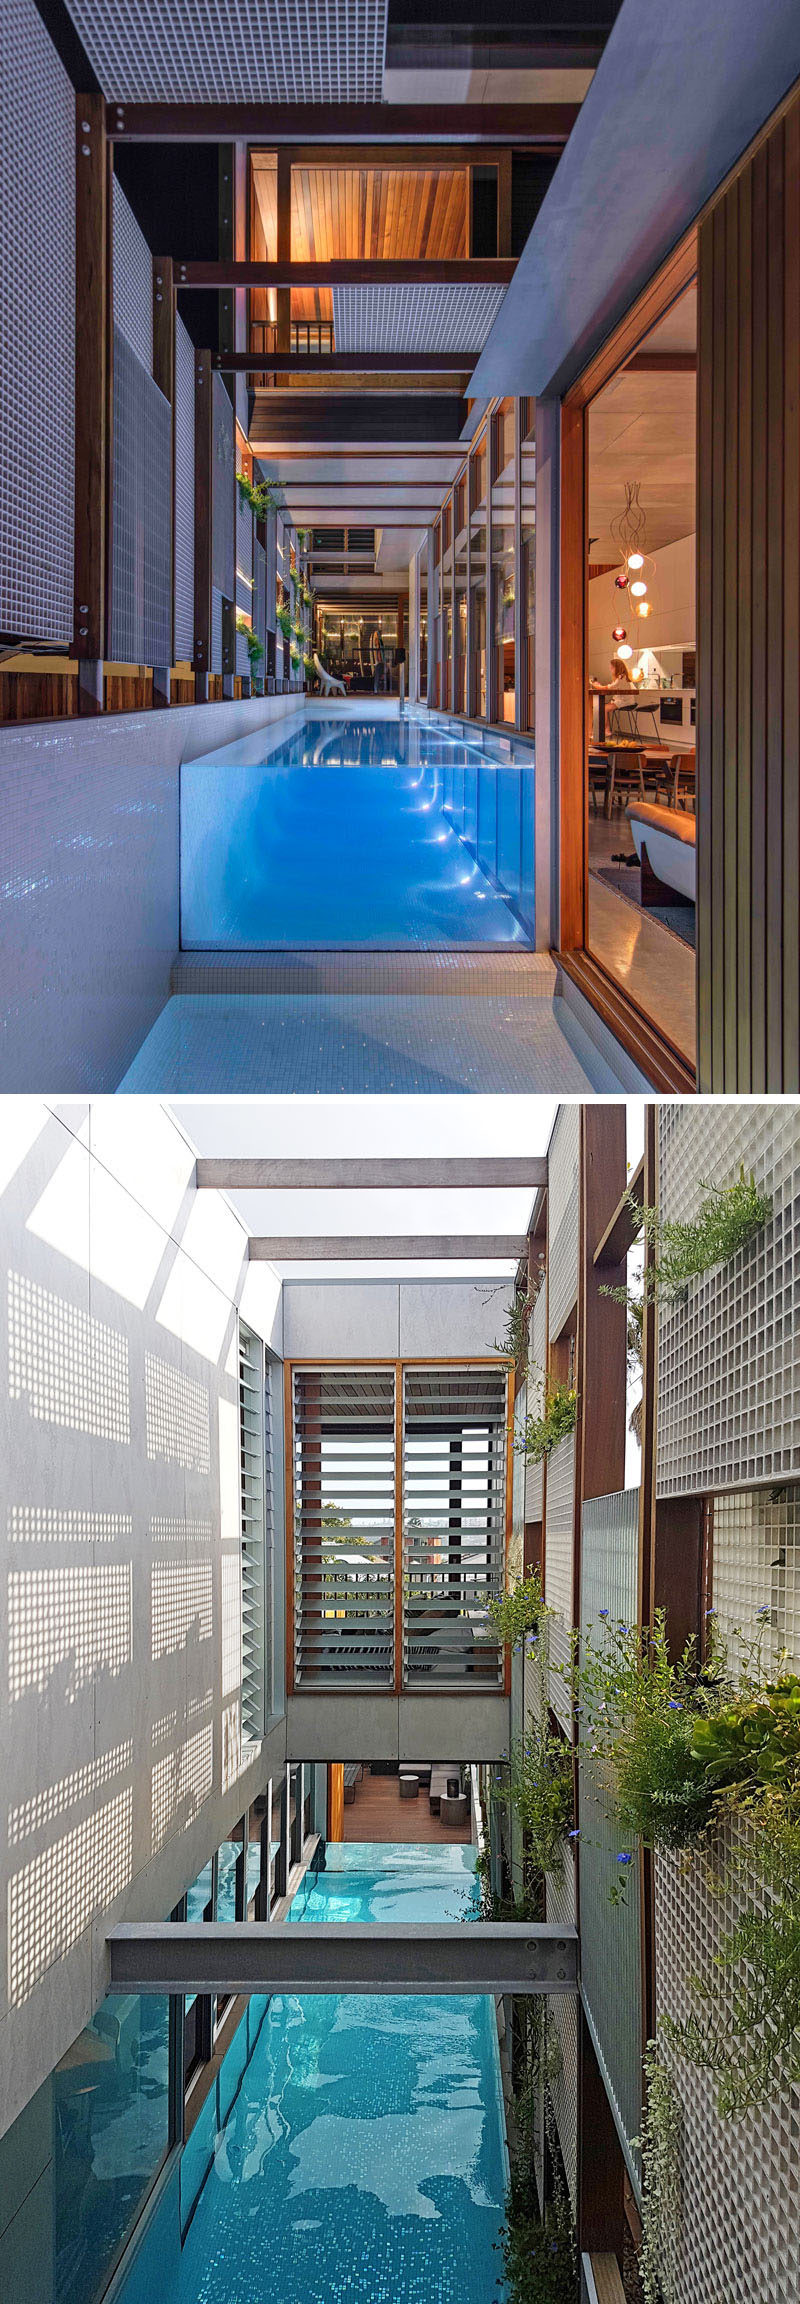 This New House Was Surrounded With Screens To Filter The Light And Create Privacy